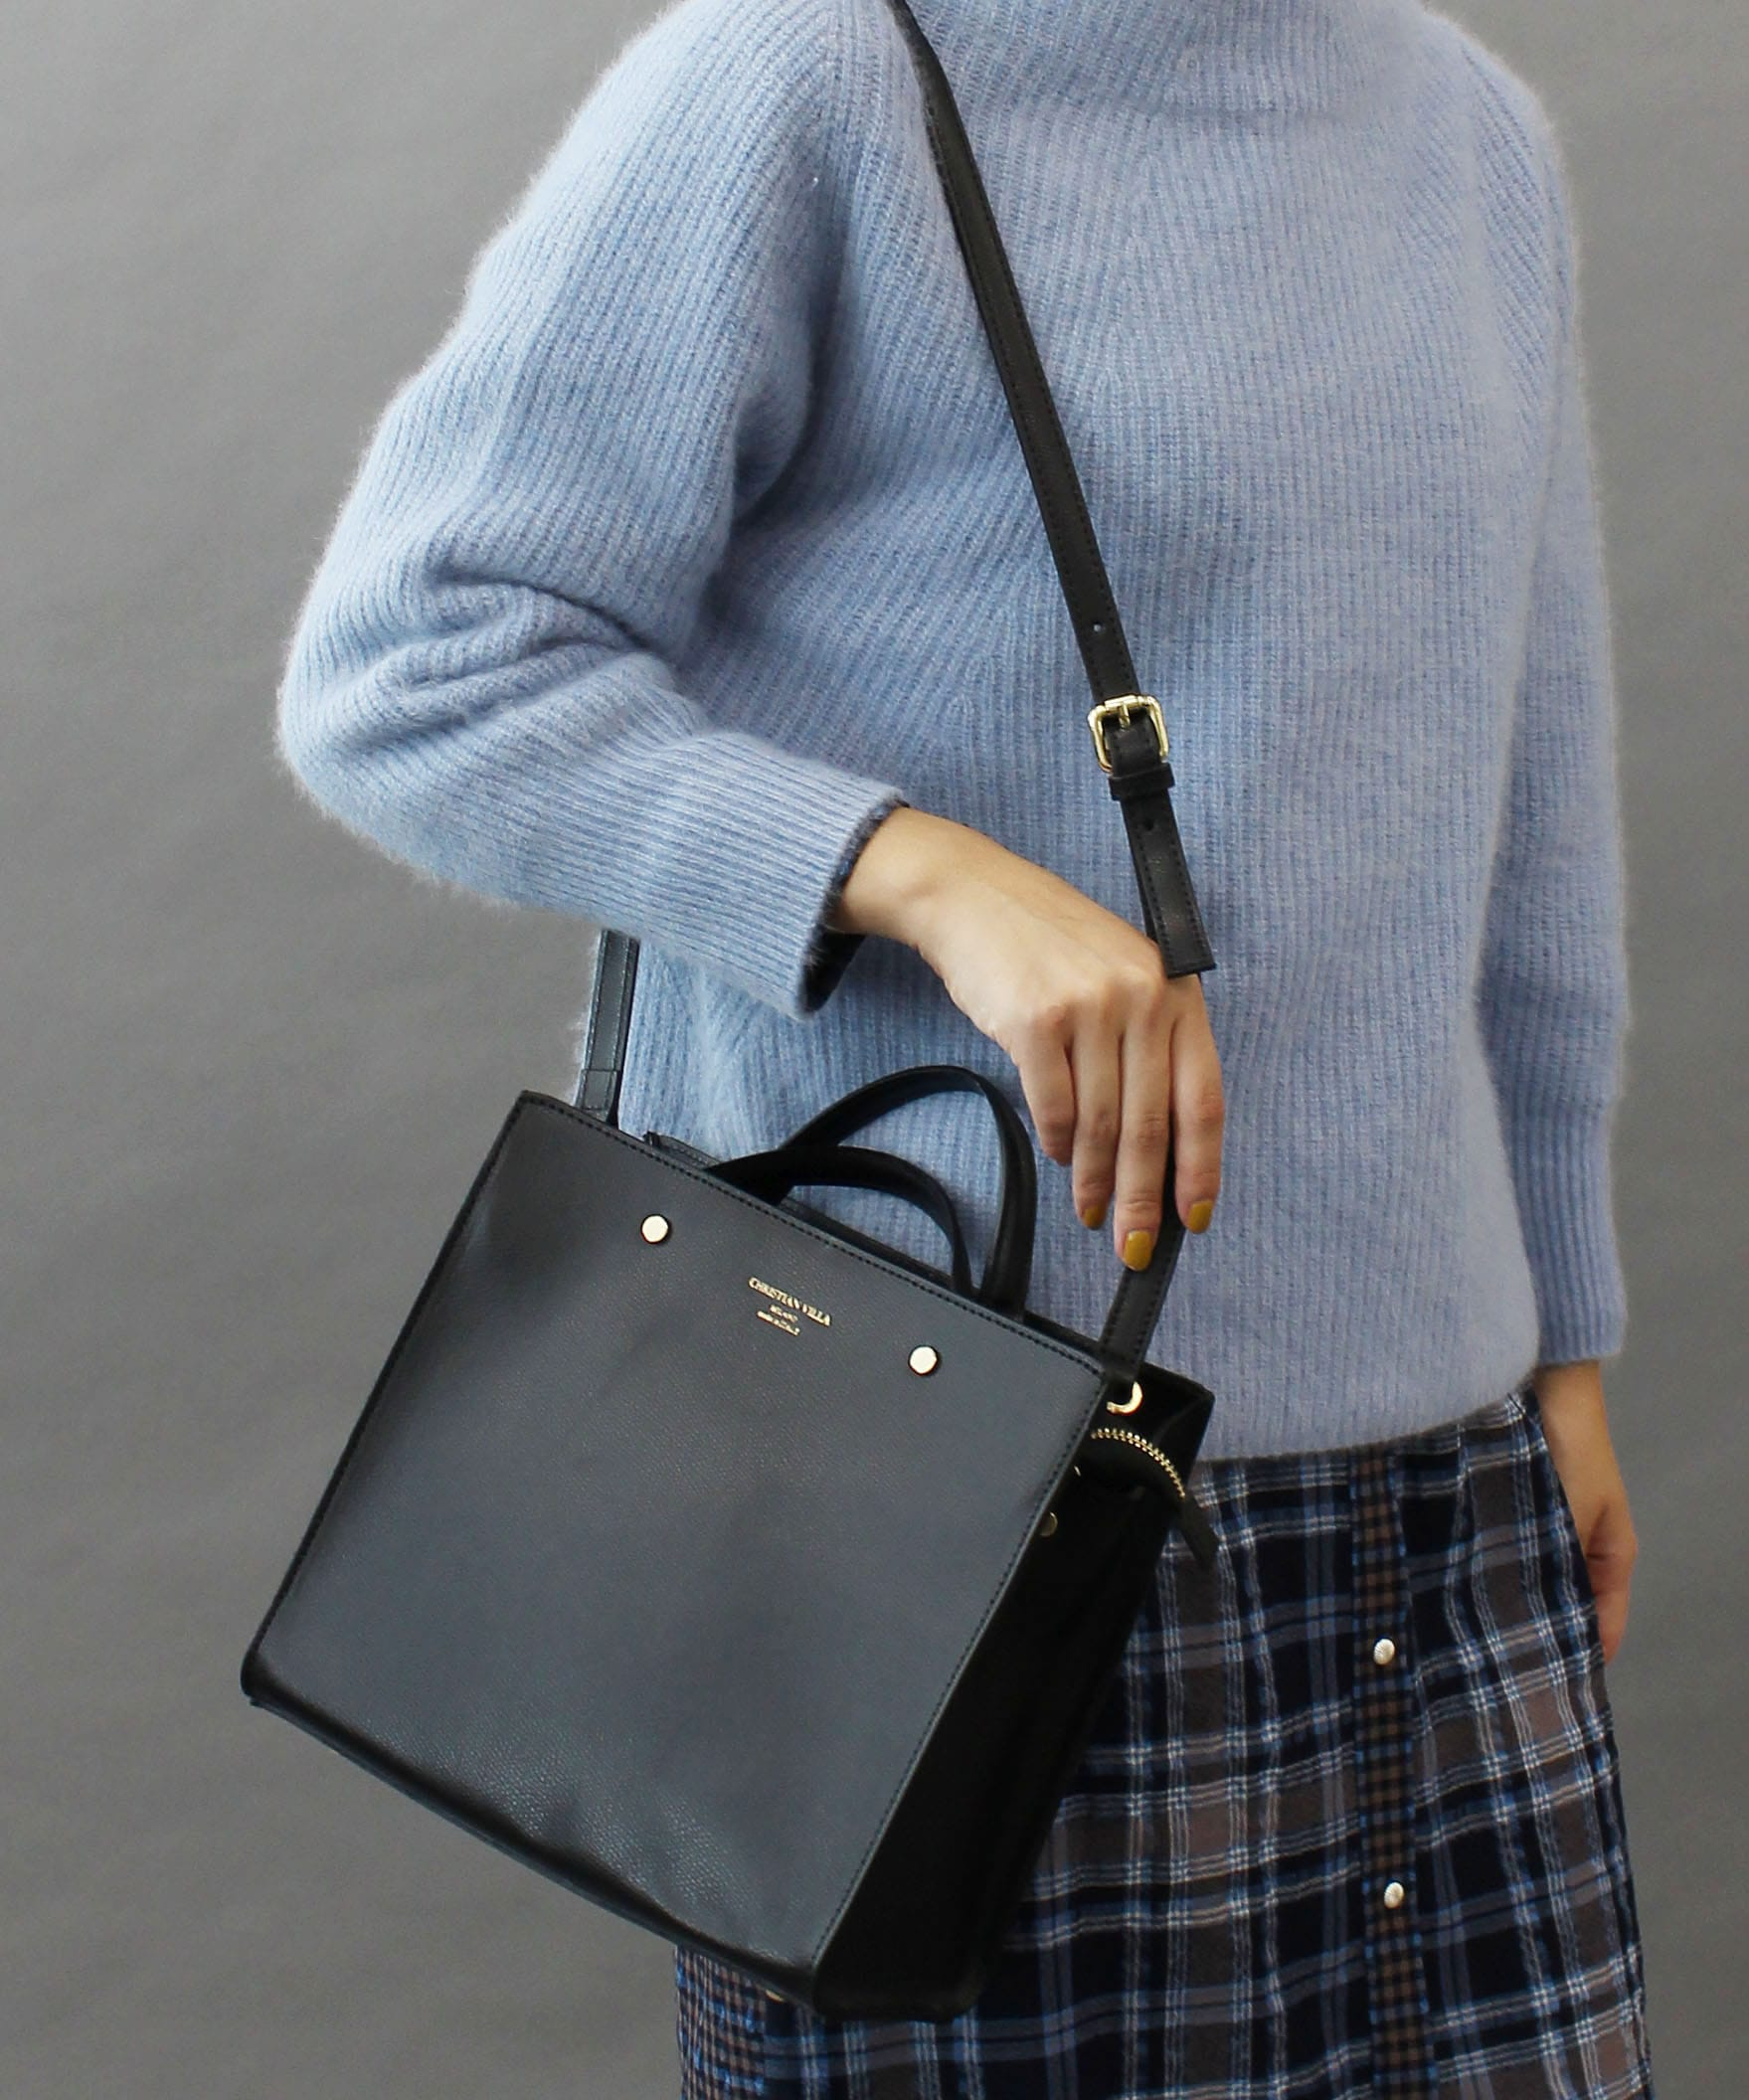 【 CHRISTIAN VILLA / クリスチャン ヴィラ 】Calf Leather with Lining fabric SQ bag1